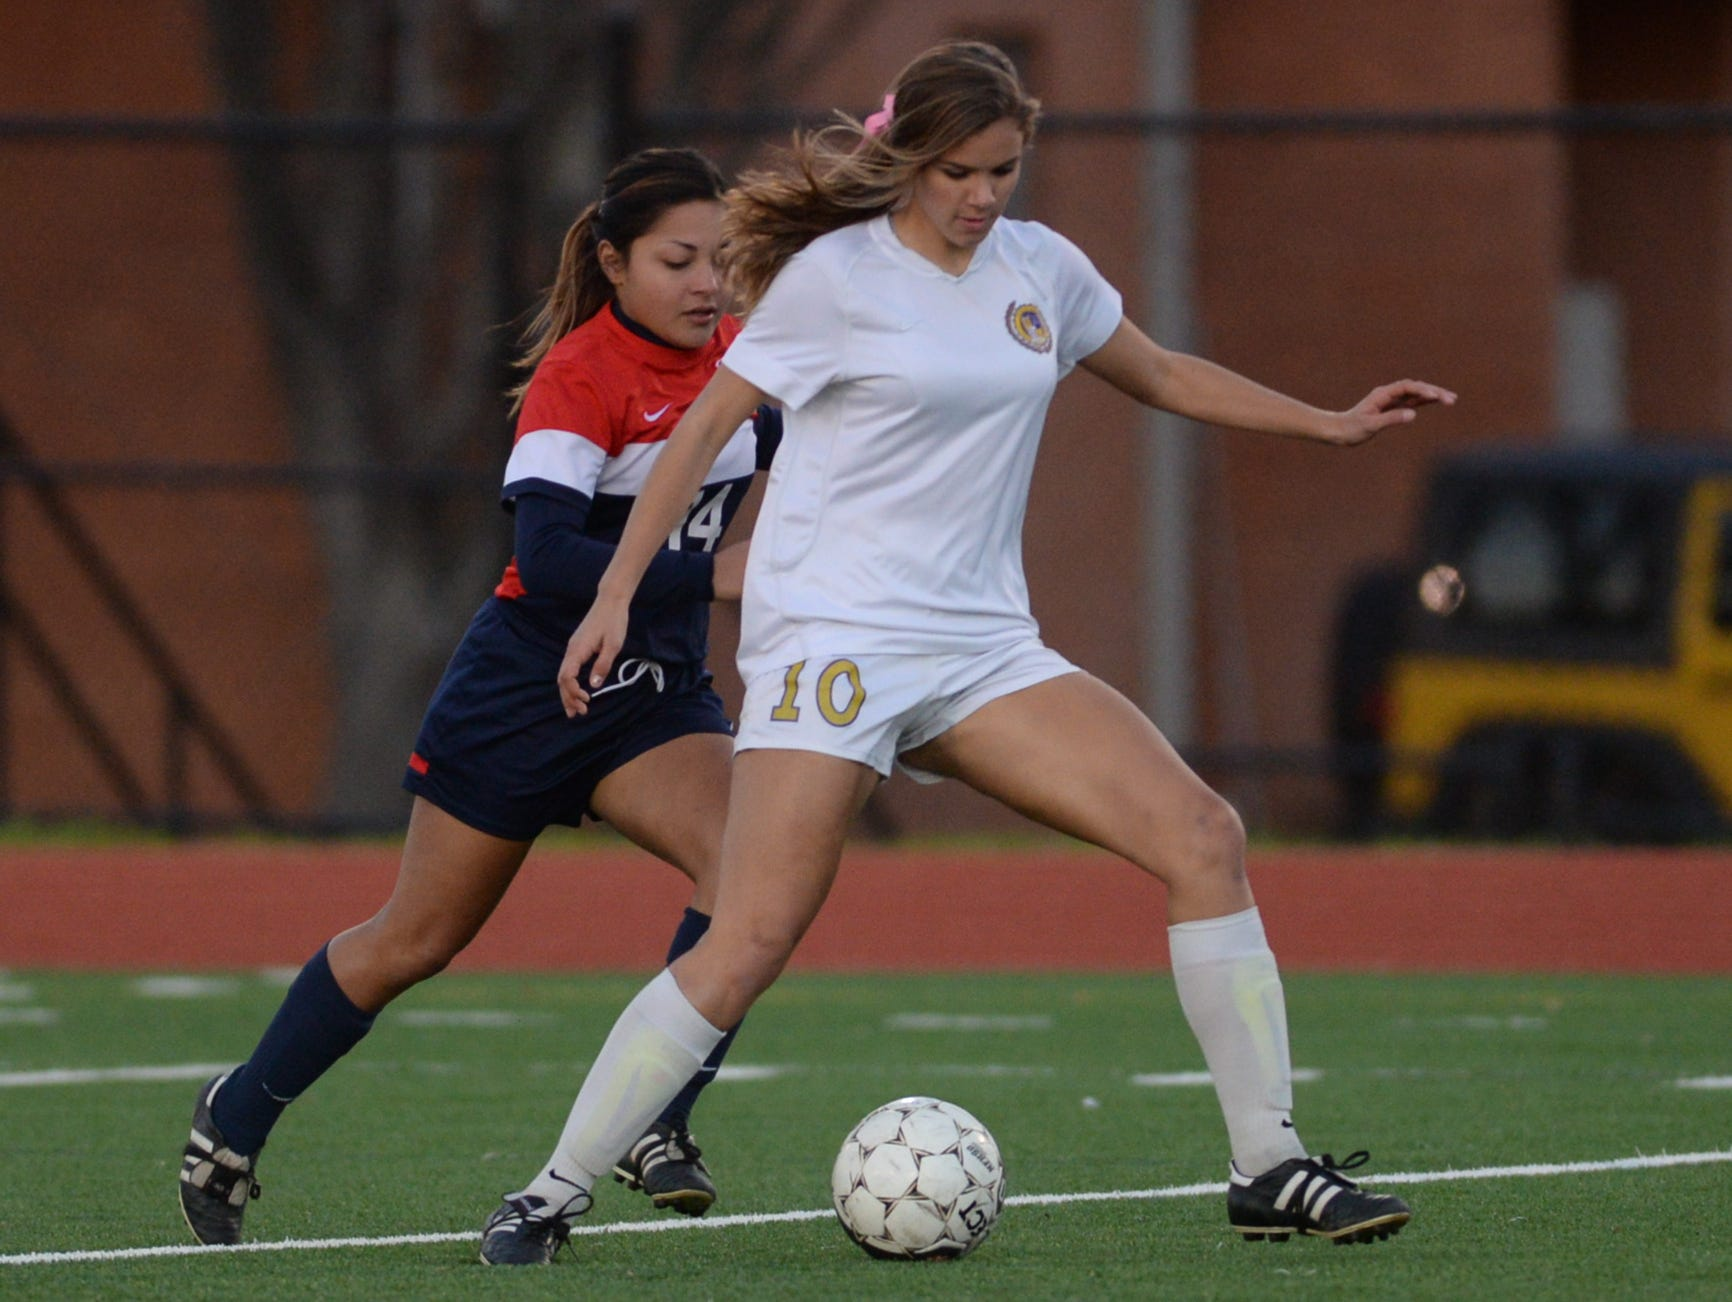 Byrd's Kyra Montes keeps the ball away from Tyanny Barajas with the ball.